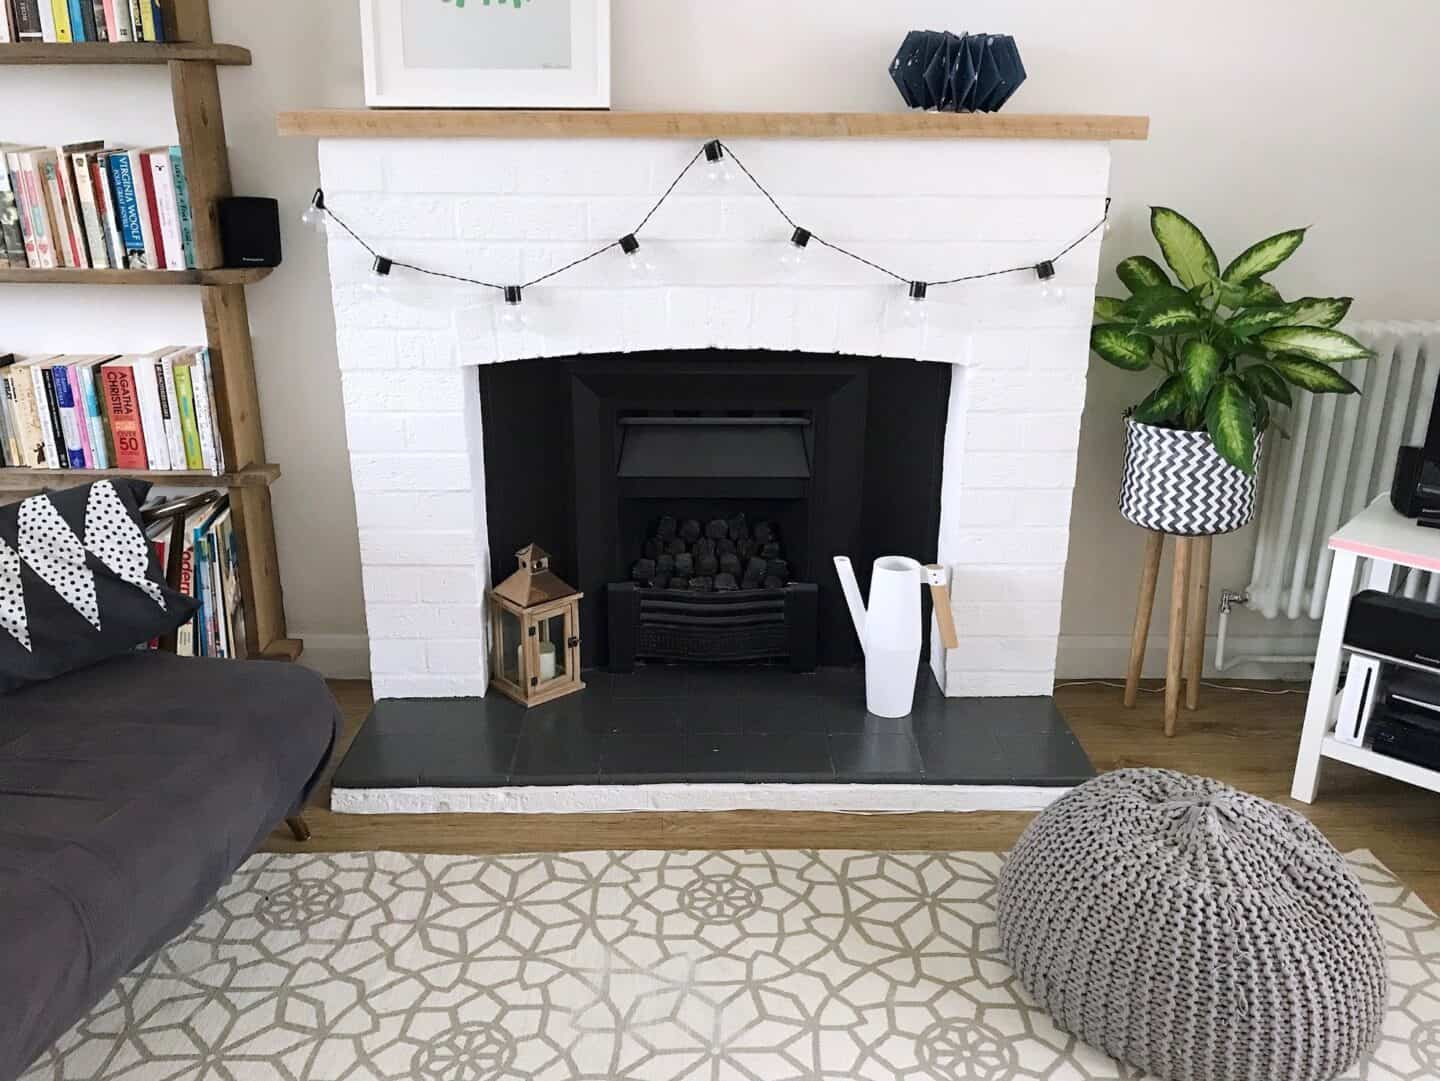 Summer Living Room Rug Refresh Plans with Cox & Cox